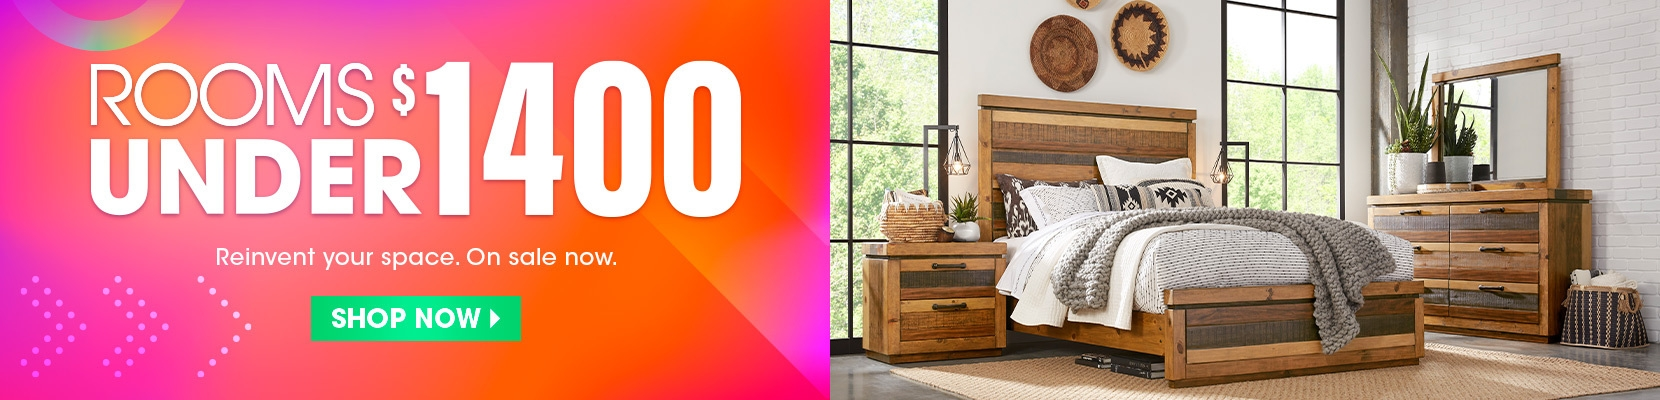 Rooms under $1400. a stylish home doesn't need to cost a fortune. shop now.